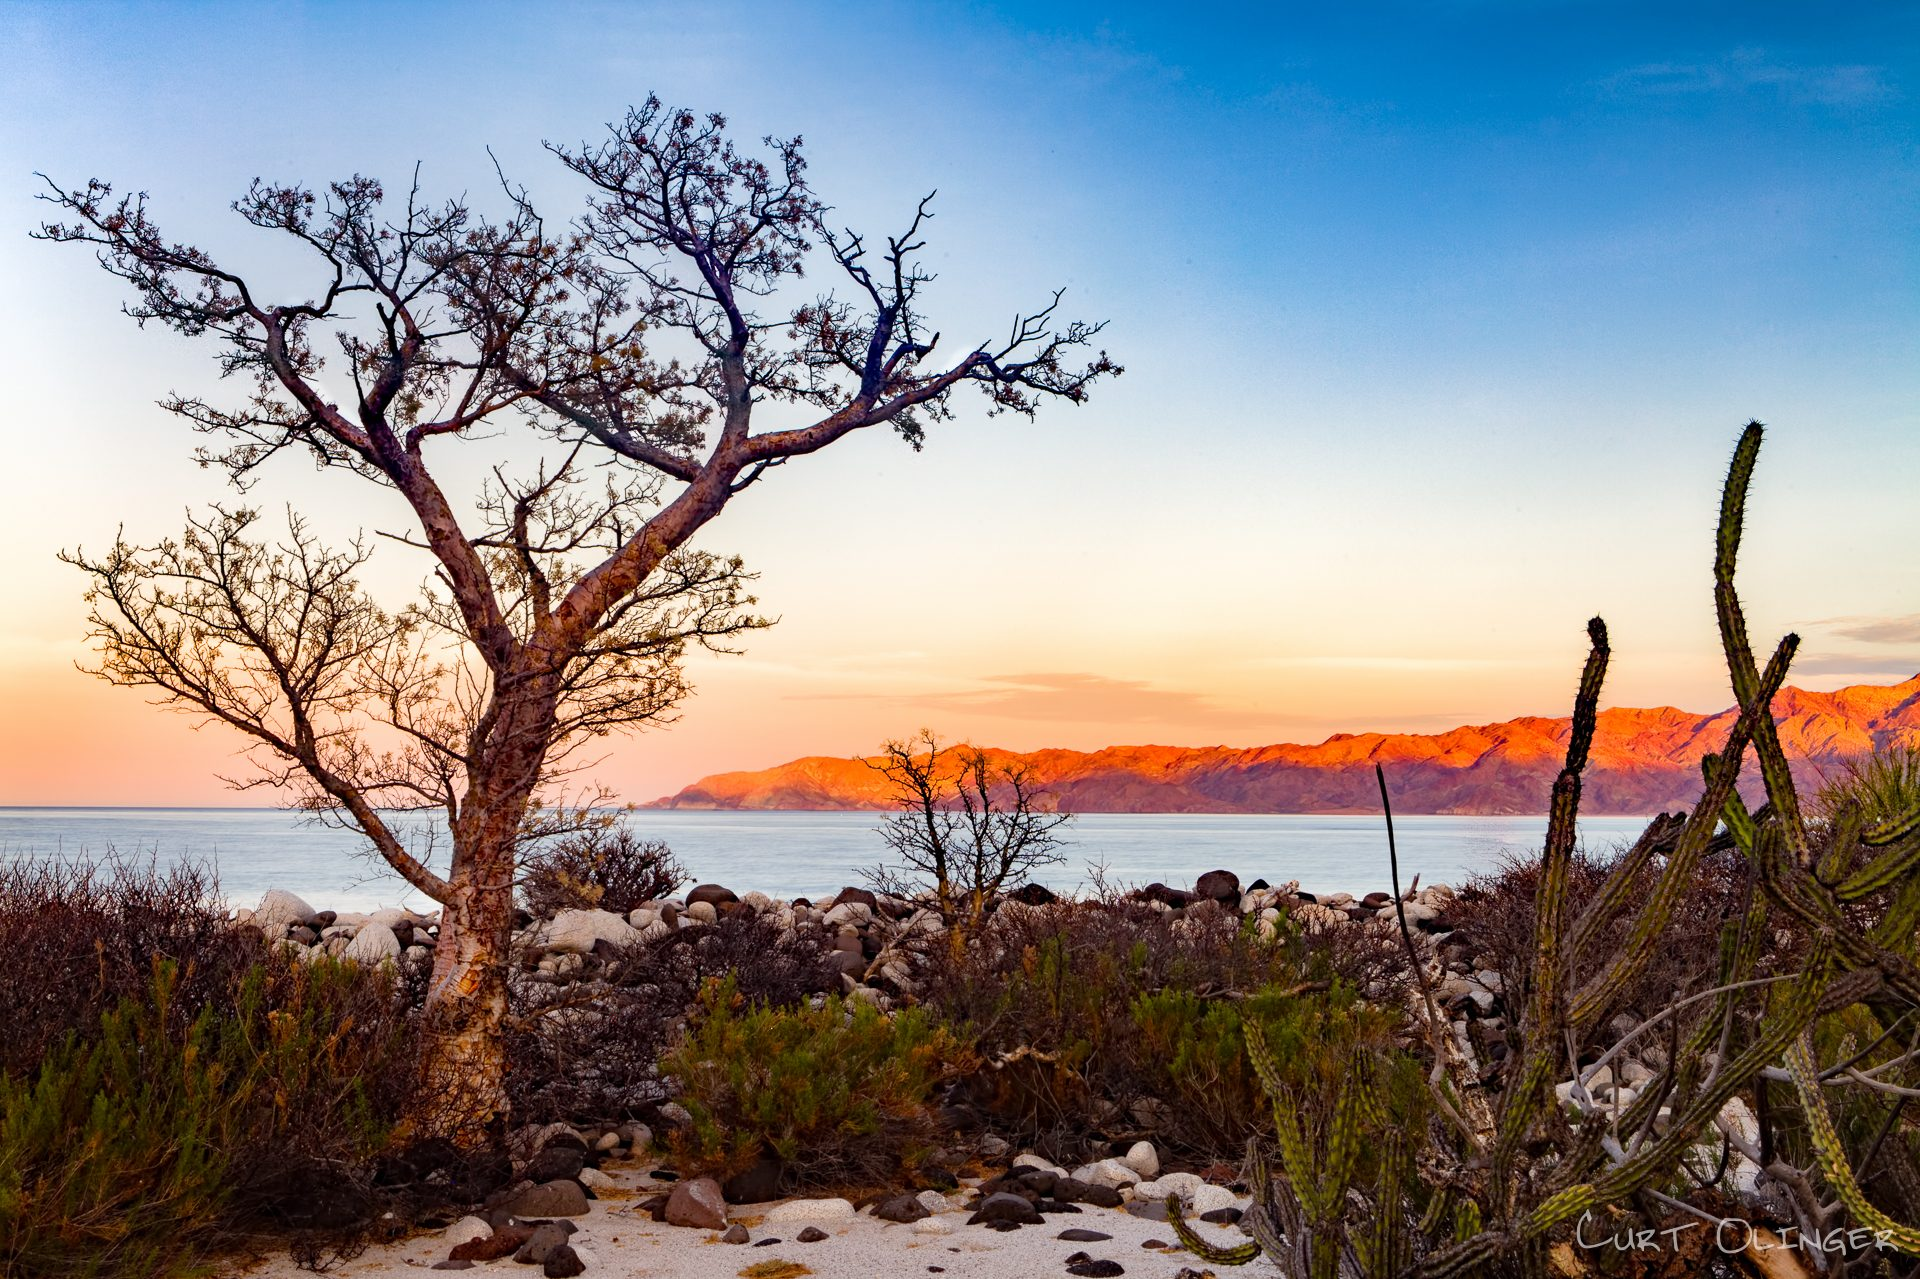 Baja adventure travel - Baja Nature Photography Tours